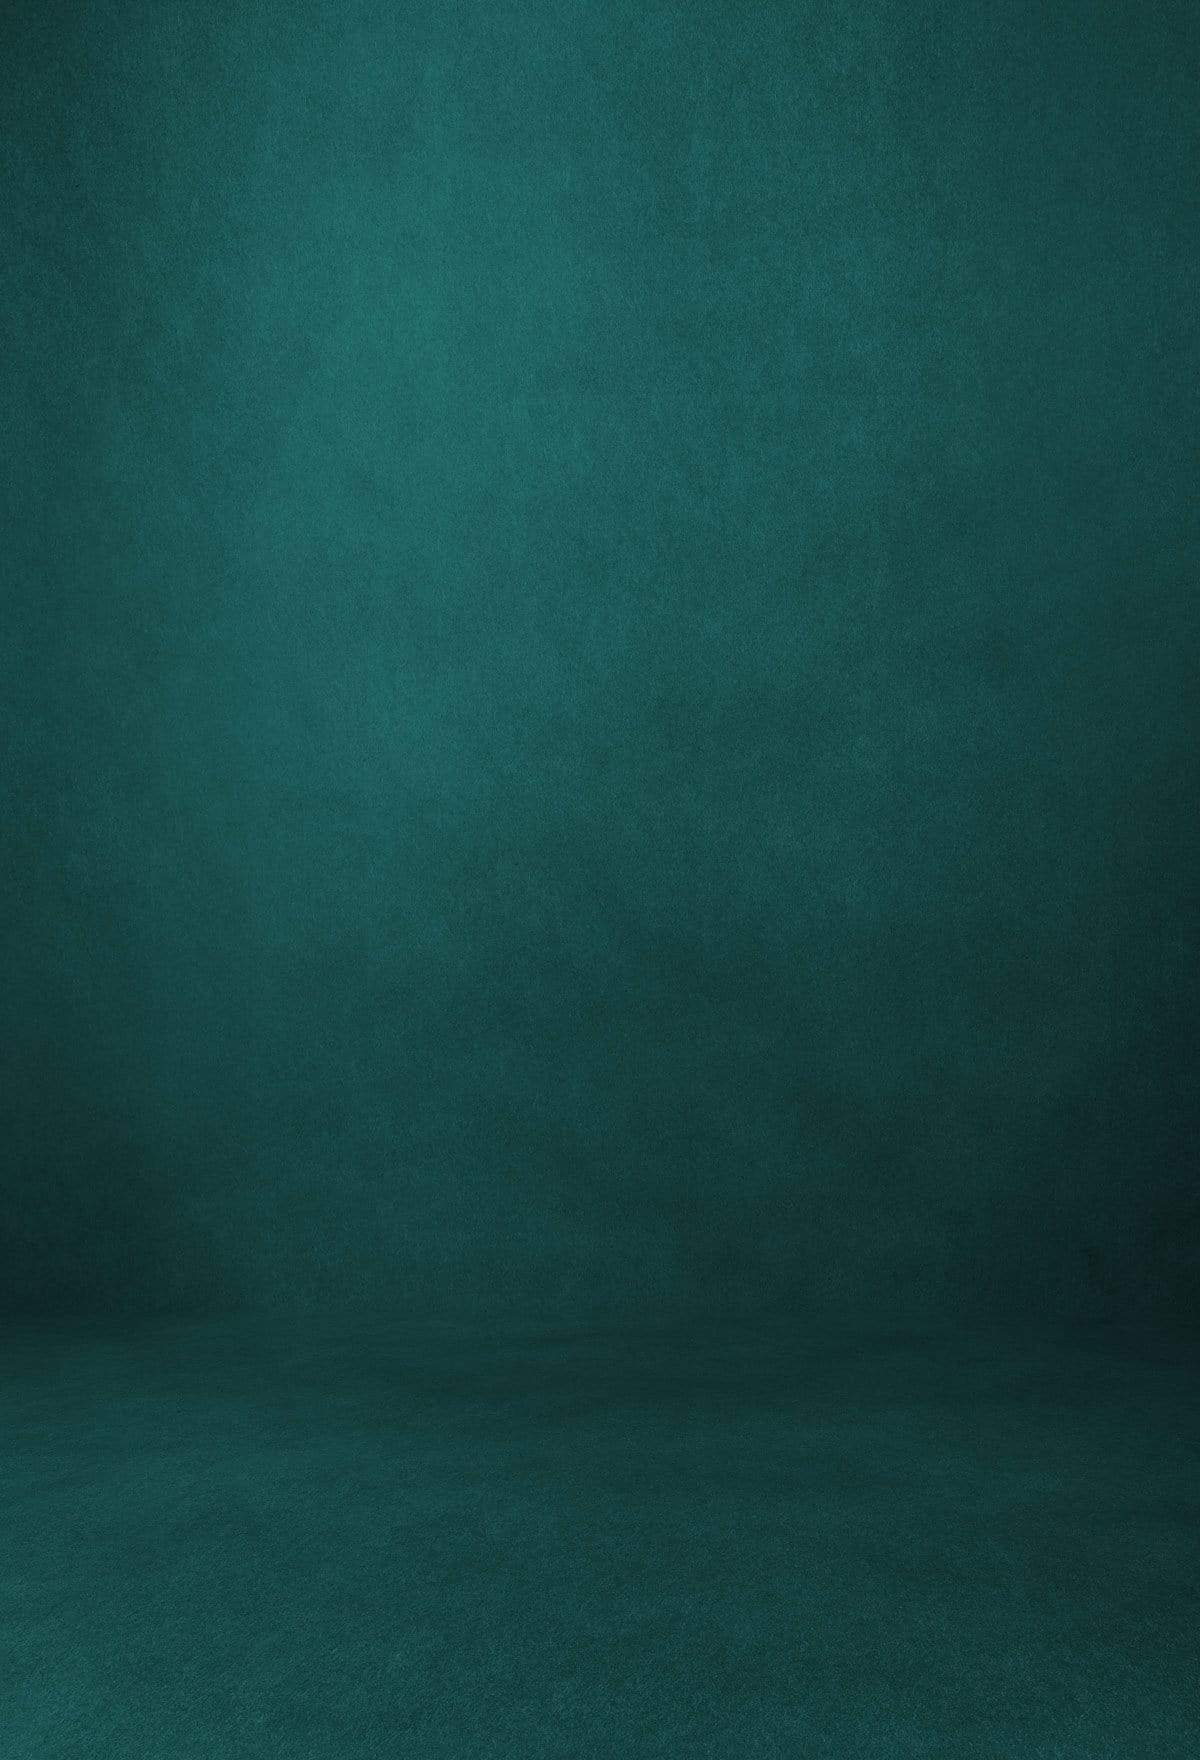 Load image into Gallery viewer, Katebackdrop:Kate Turquoise Abstract Texture Backdrop for Photography